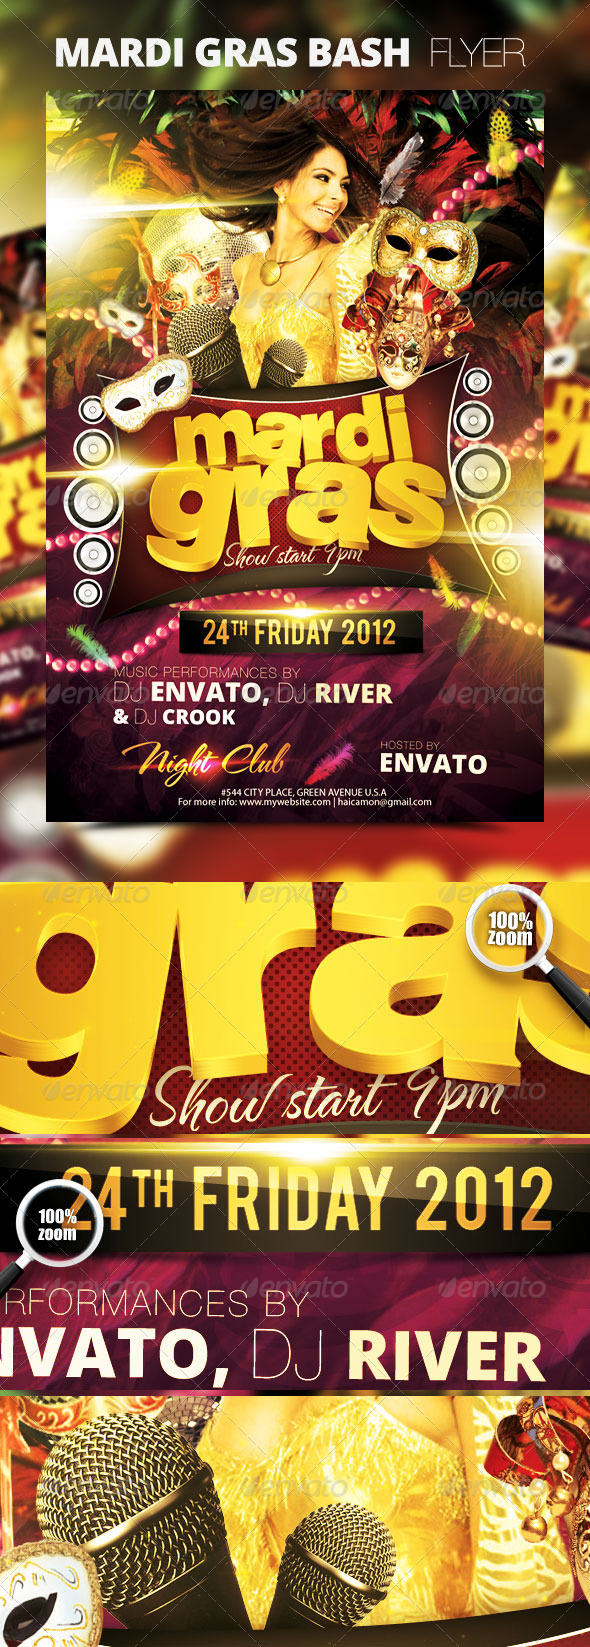 Mardi Gras Bash Flyer Vol_1 - Clubs & Parties Events